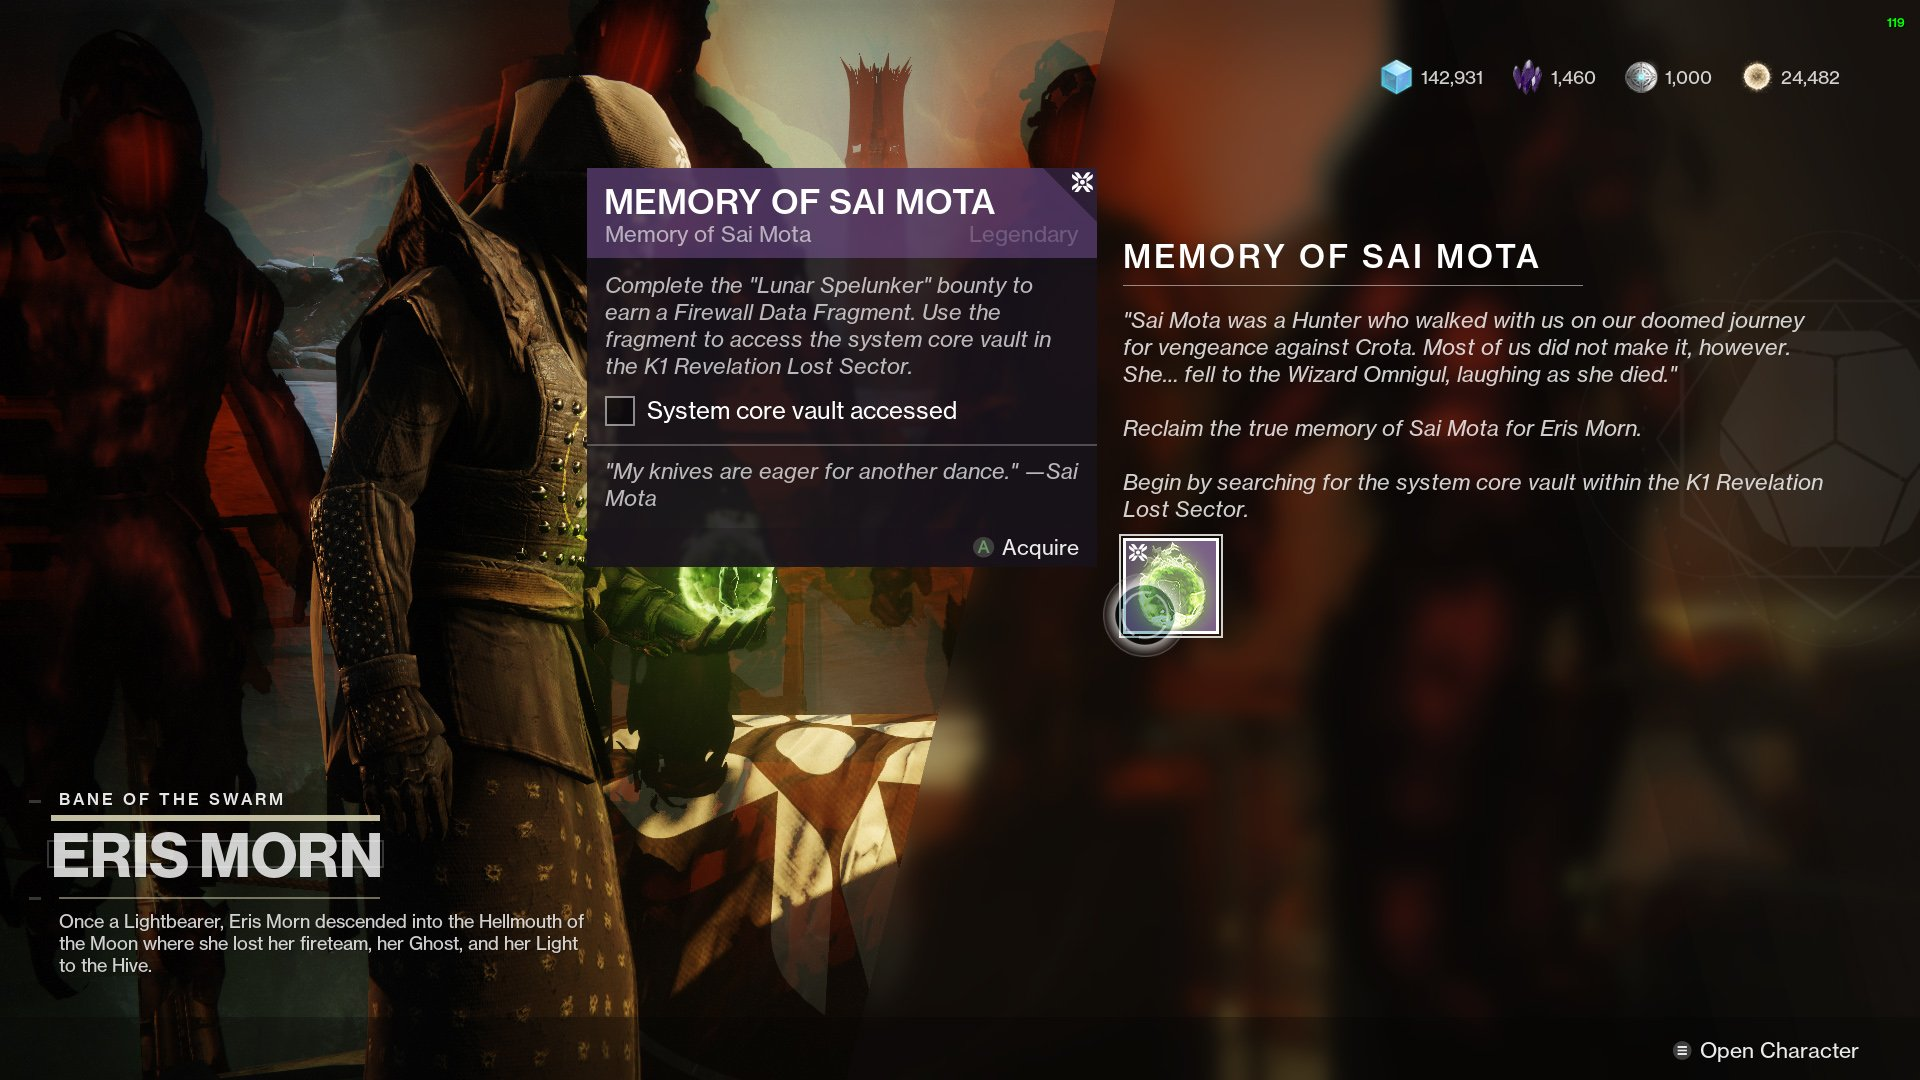 Destiny 2 Memory of Sai Mota